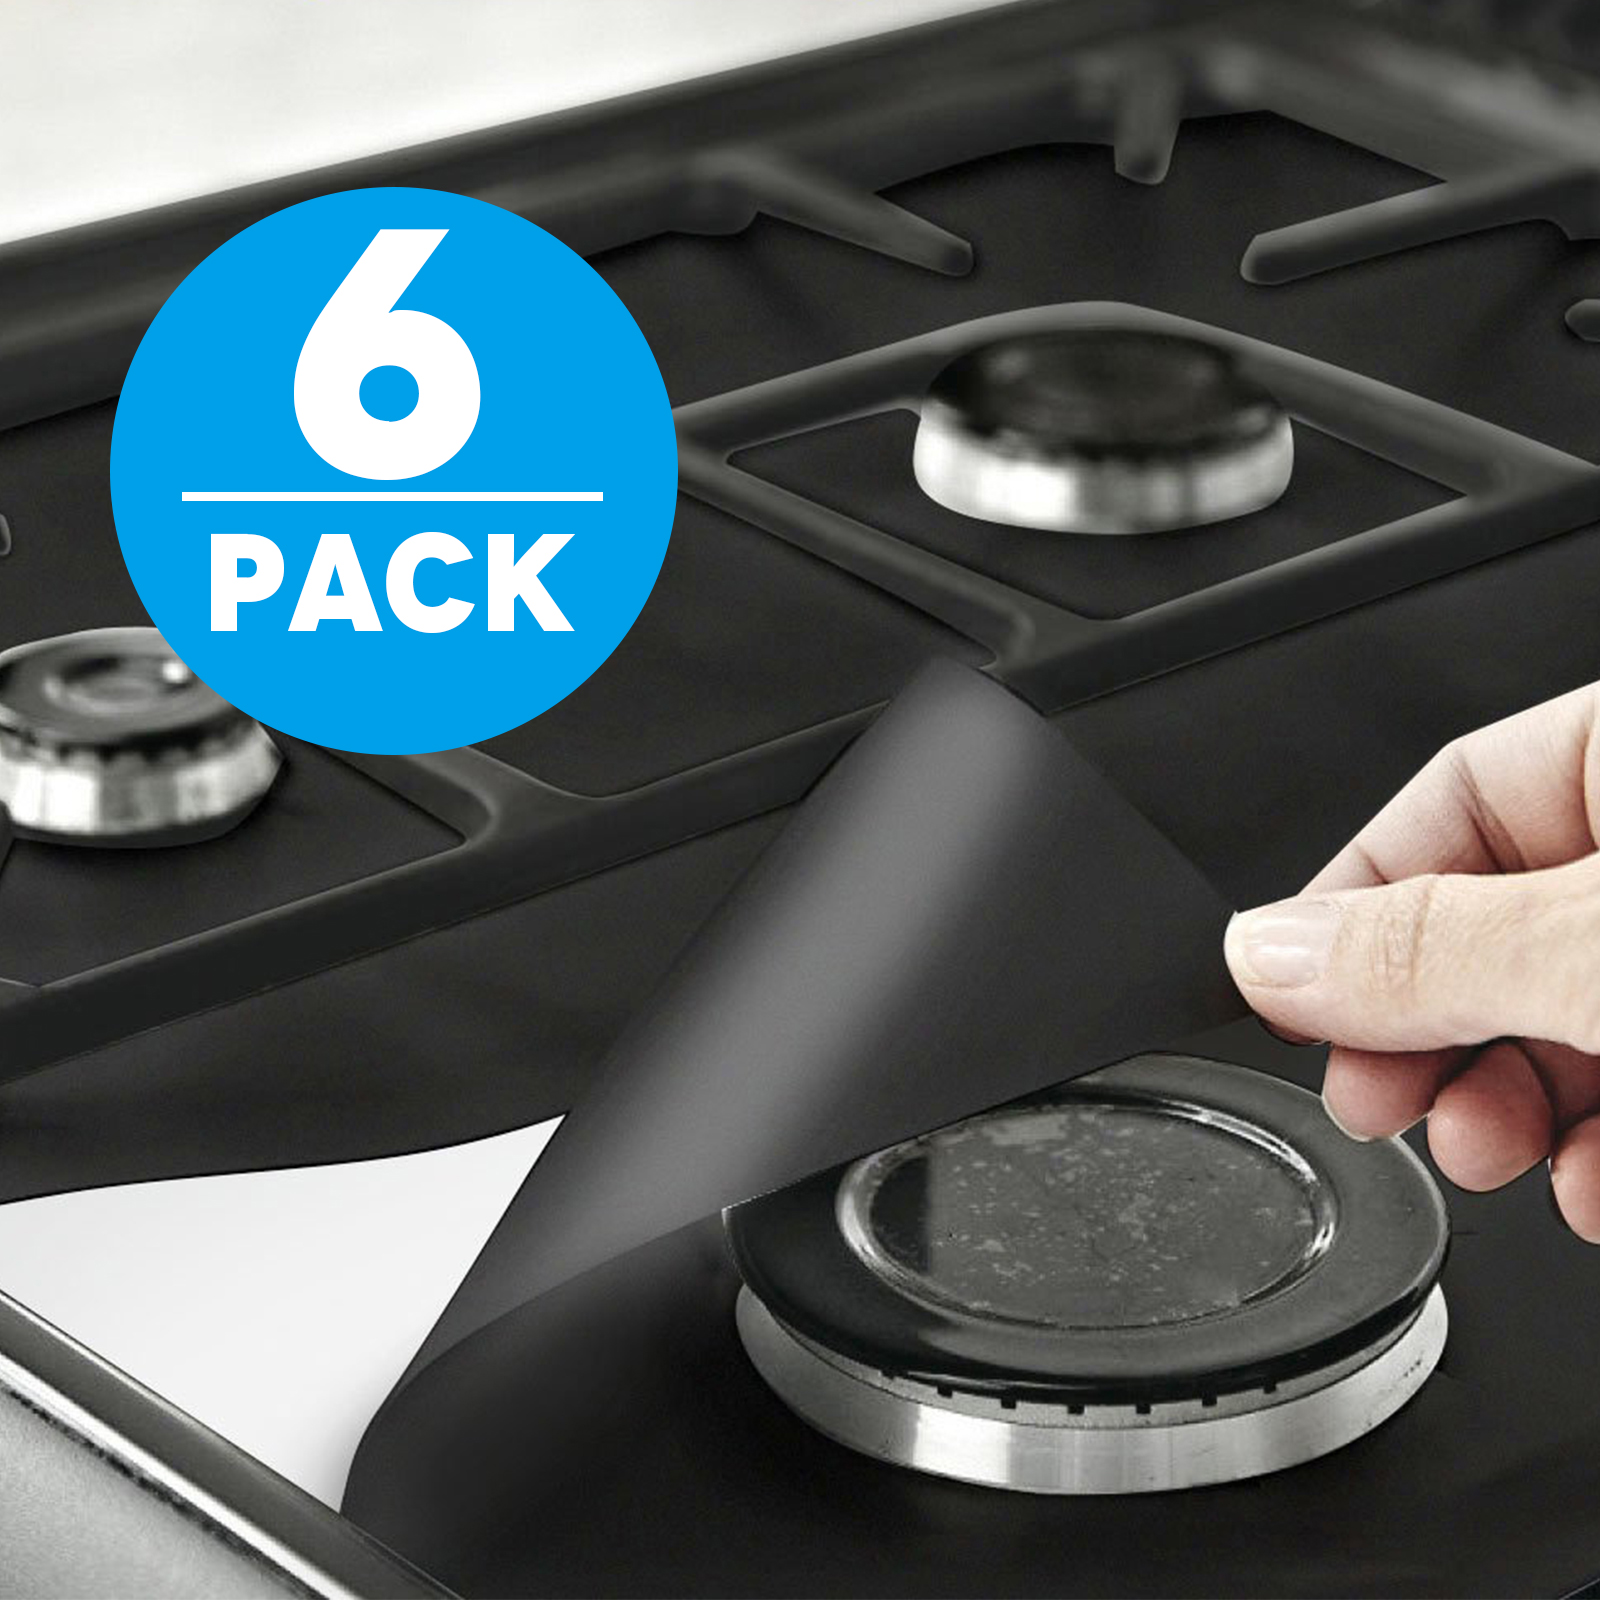 Gas range burner Gas Chula Gas Range Protectors Tsv Liner Covers Reusable Gas Stove Burner Covers 106 106 Double Thickness 02mm Nonstick Fast Clean 6 Packs Walmart Walmart Gas Range Protectors Tsv Liner Covers Reusable Gas Stove Burner